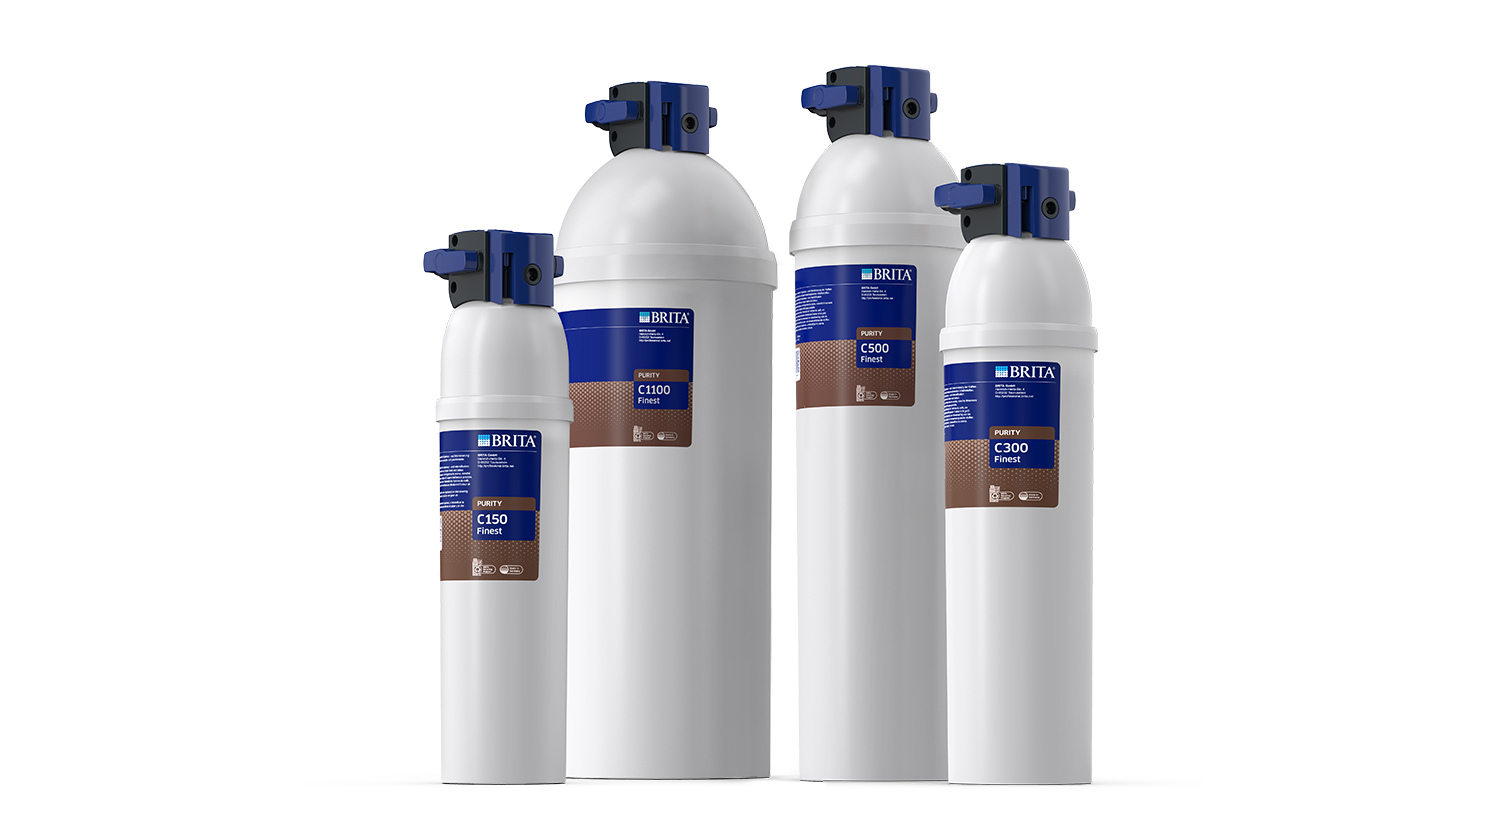 BRITA filter PURITY C Finest range